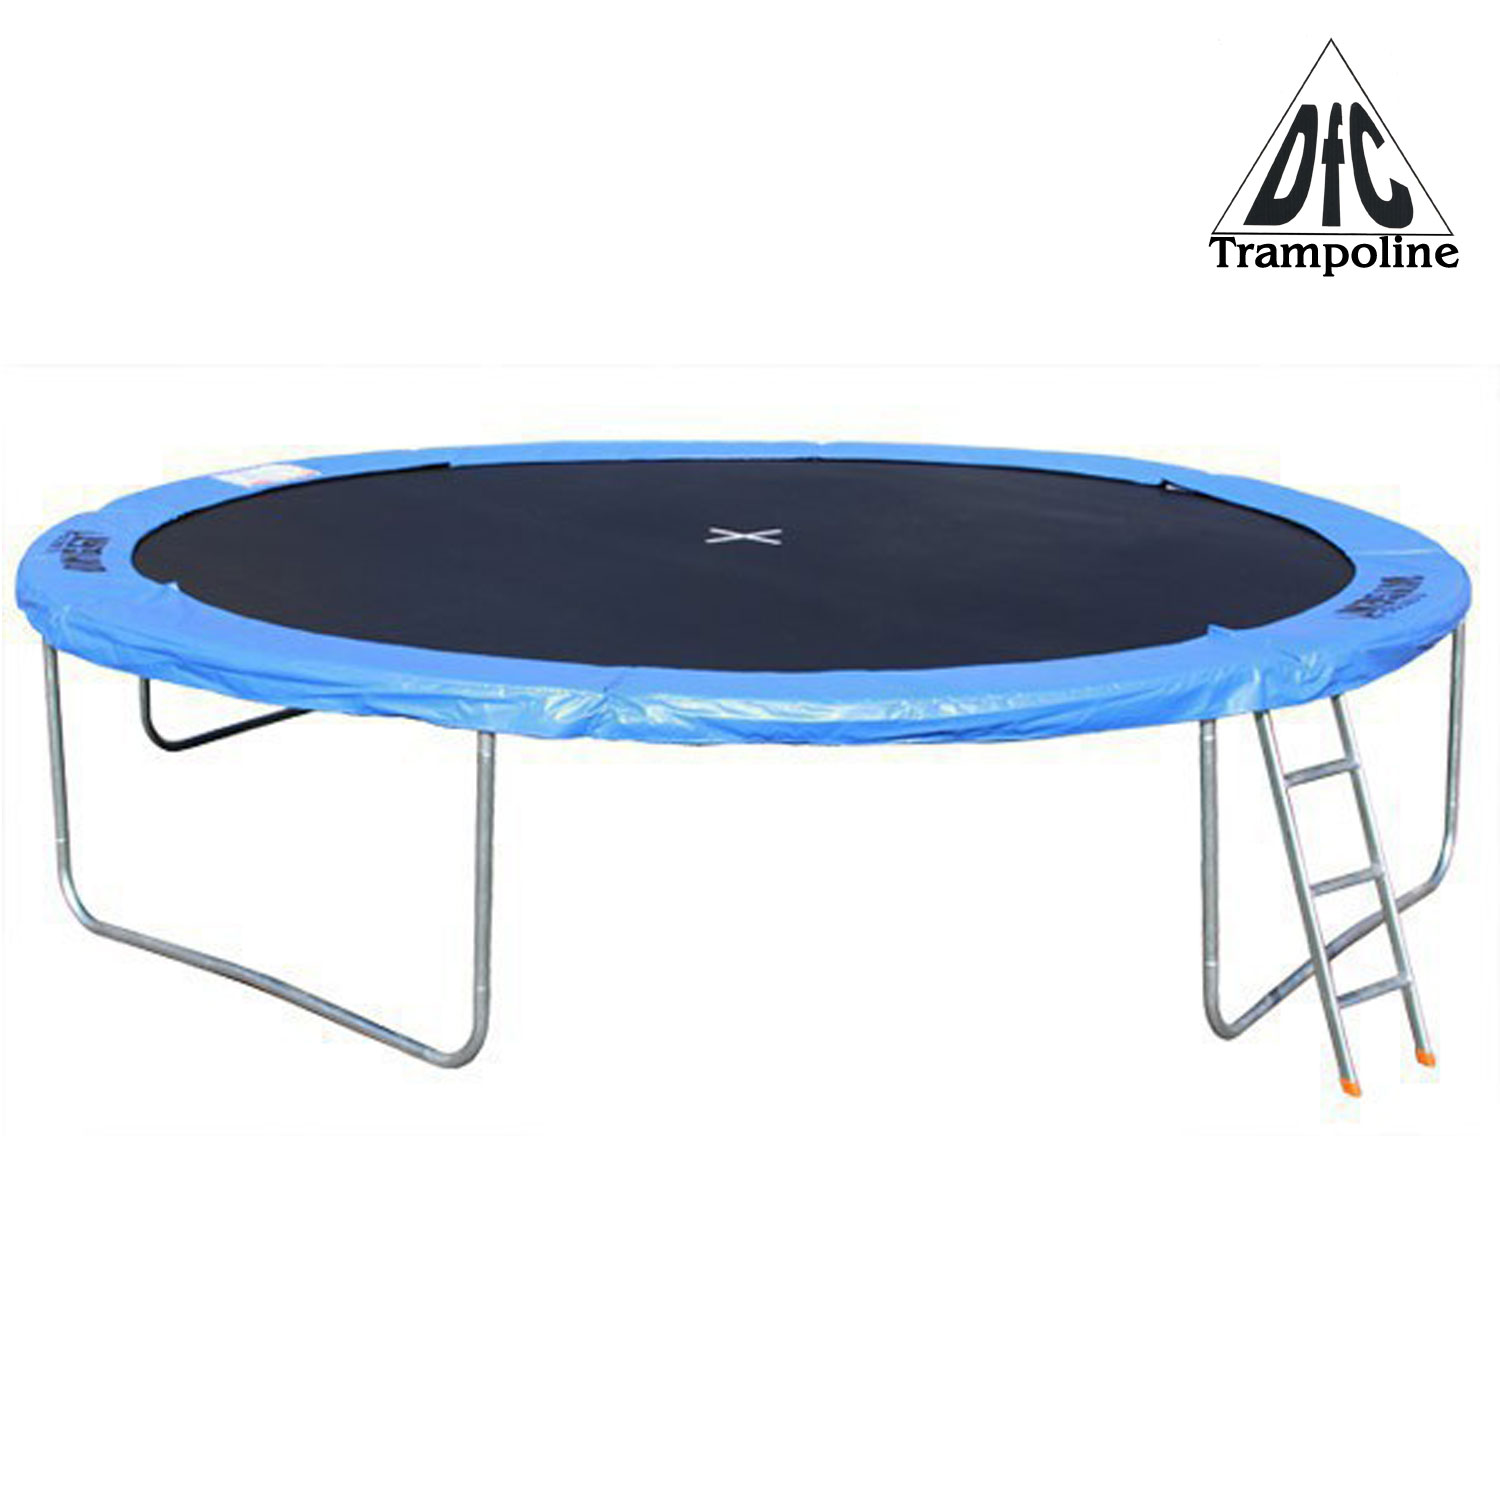 Арт. - БАТУТ  DFC TRAMPOLINE FITNESS 10FT-TR, 8792 рублей<a class='btn btn-primary btn-xs' style='margin-left:7px;' href='http://numberfive.ru/c_main/product_view/id_product/10066 '> Cмотреть </a>